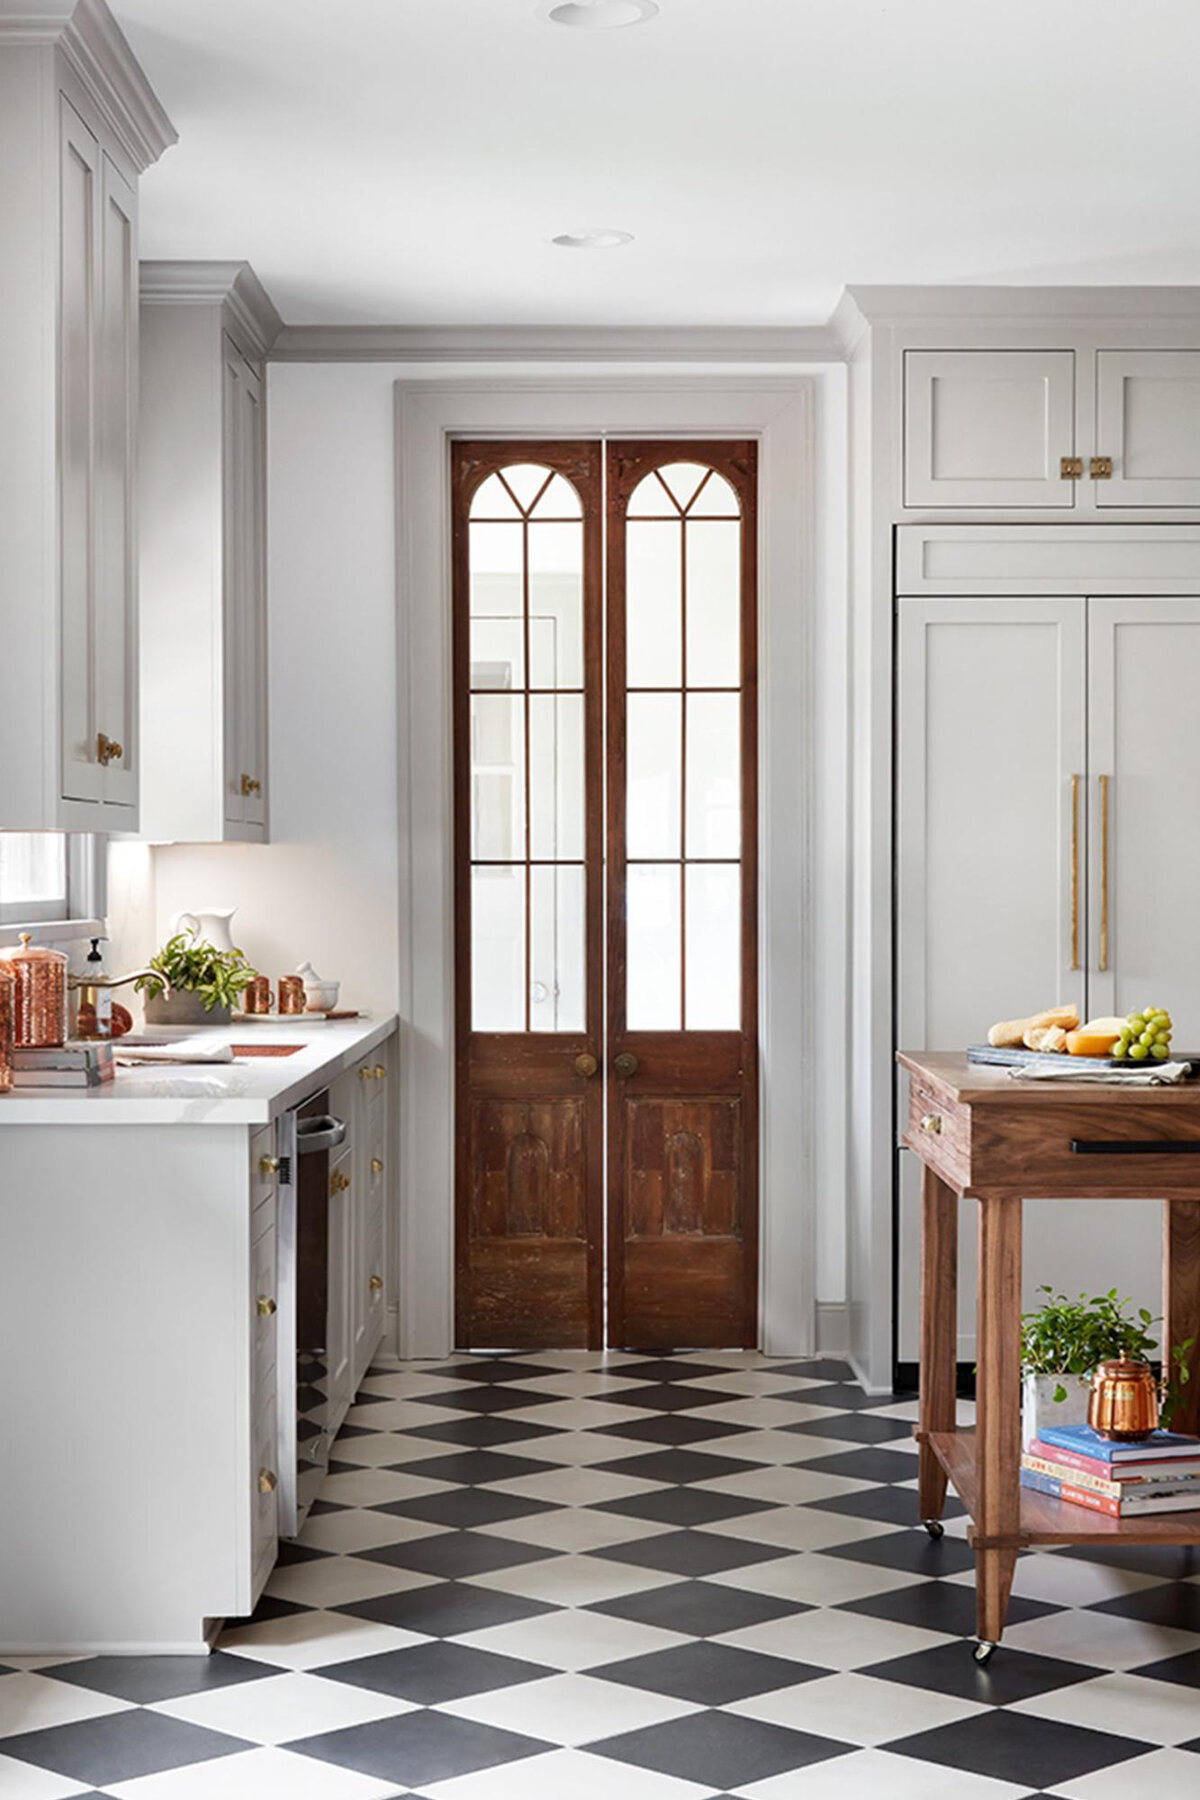 craftsman-farmhouse-style-kitchen-with-black-and-white-checkered-floors-fixer-upper.jpg